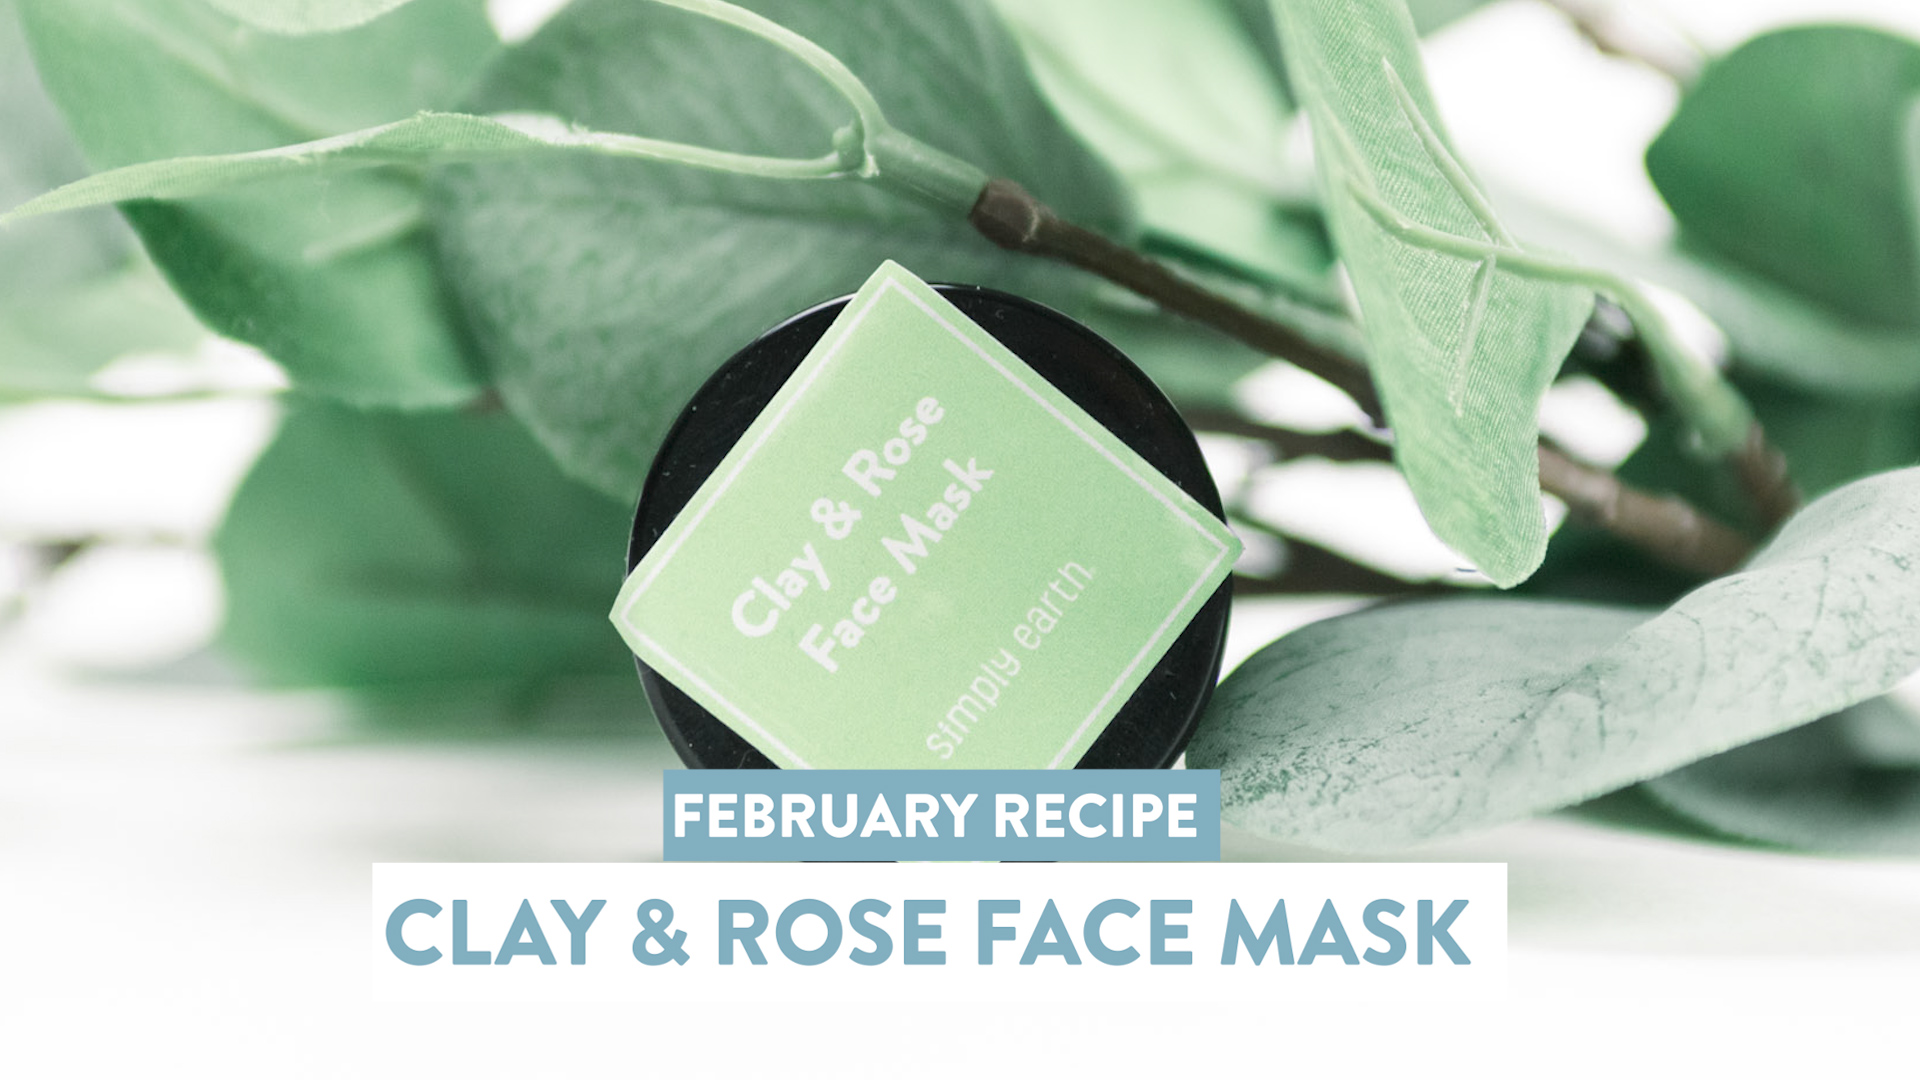 Clay & Rose Face Mask